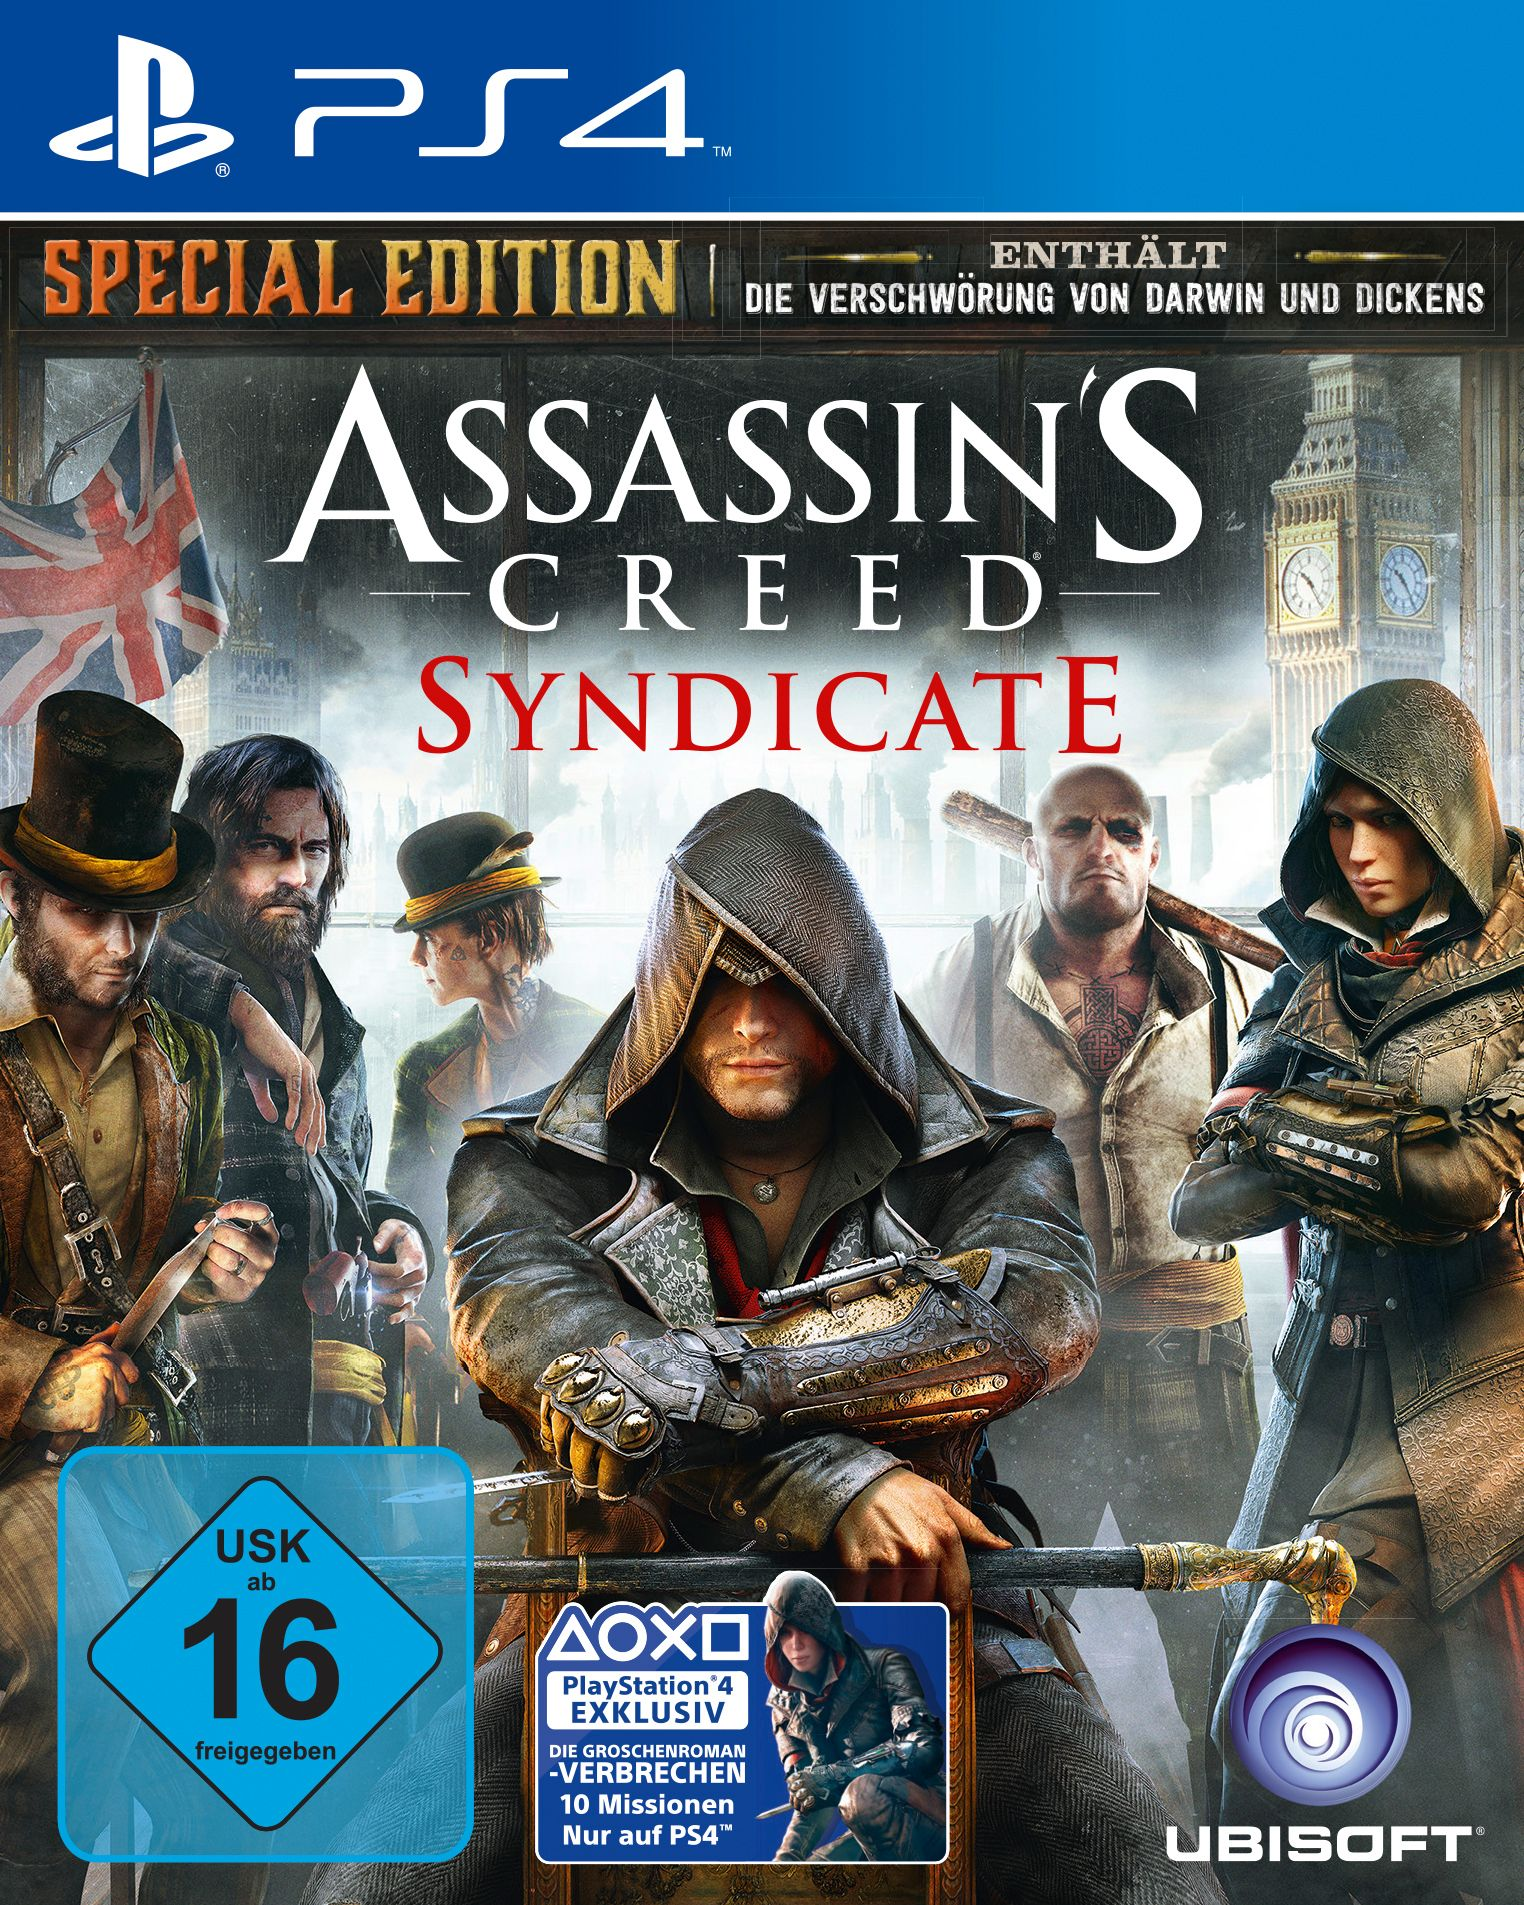 UBISOFT Assassins Creed Syndicate Special Edition PlayStation 4